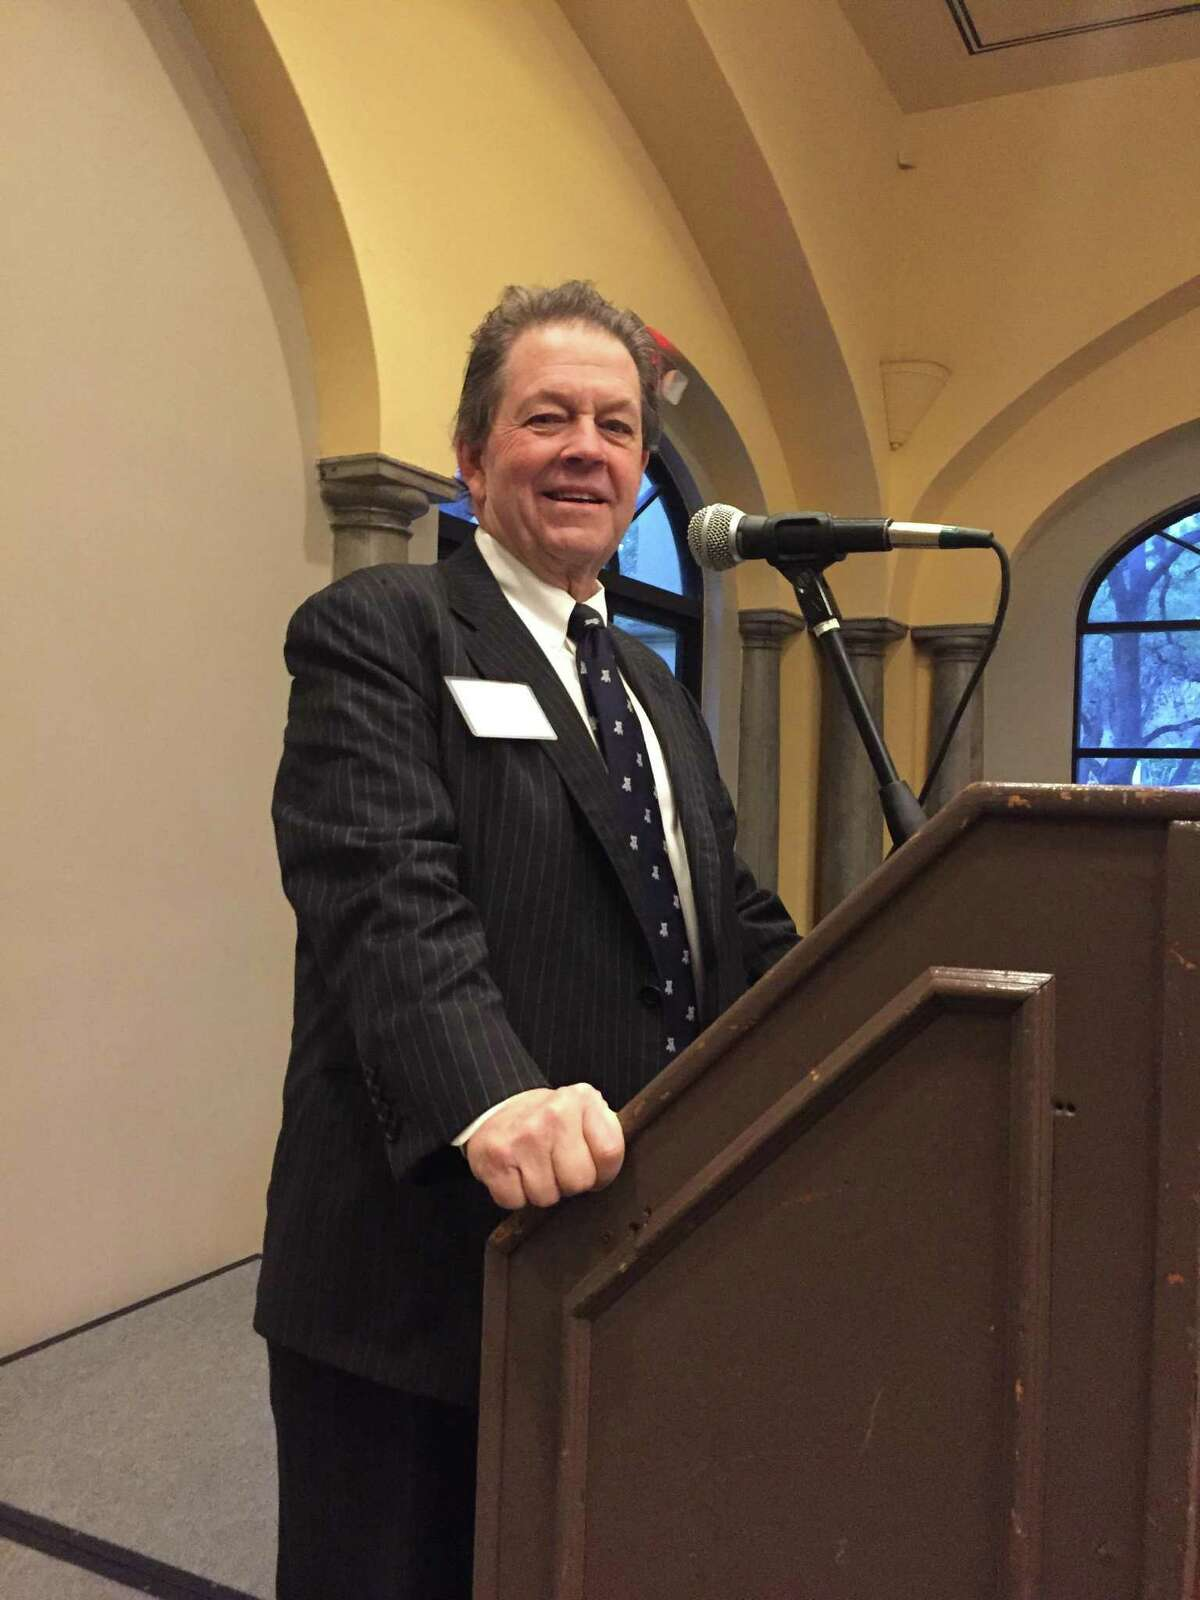 Speaking in San Antonio on Thursday, economist Arthur Laffer predicted a new wave of prosperity from Donald Trump tax cuts.